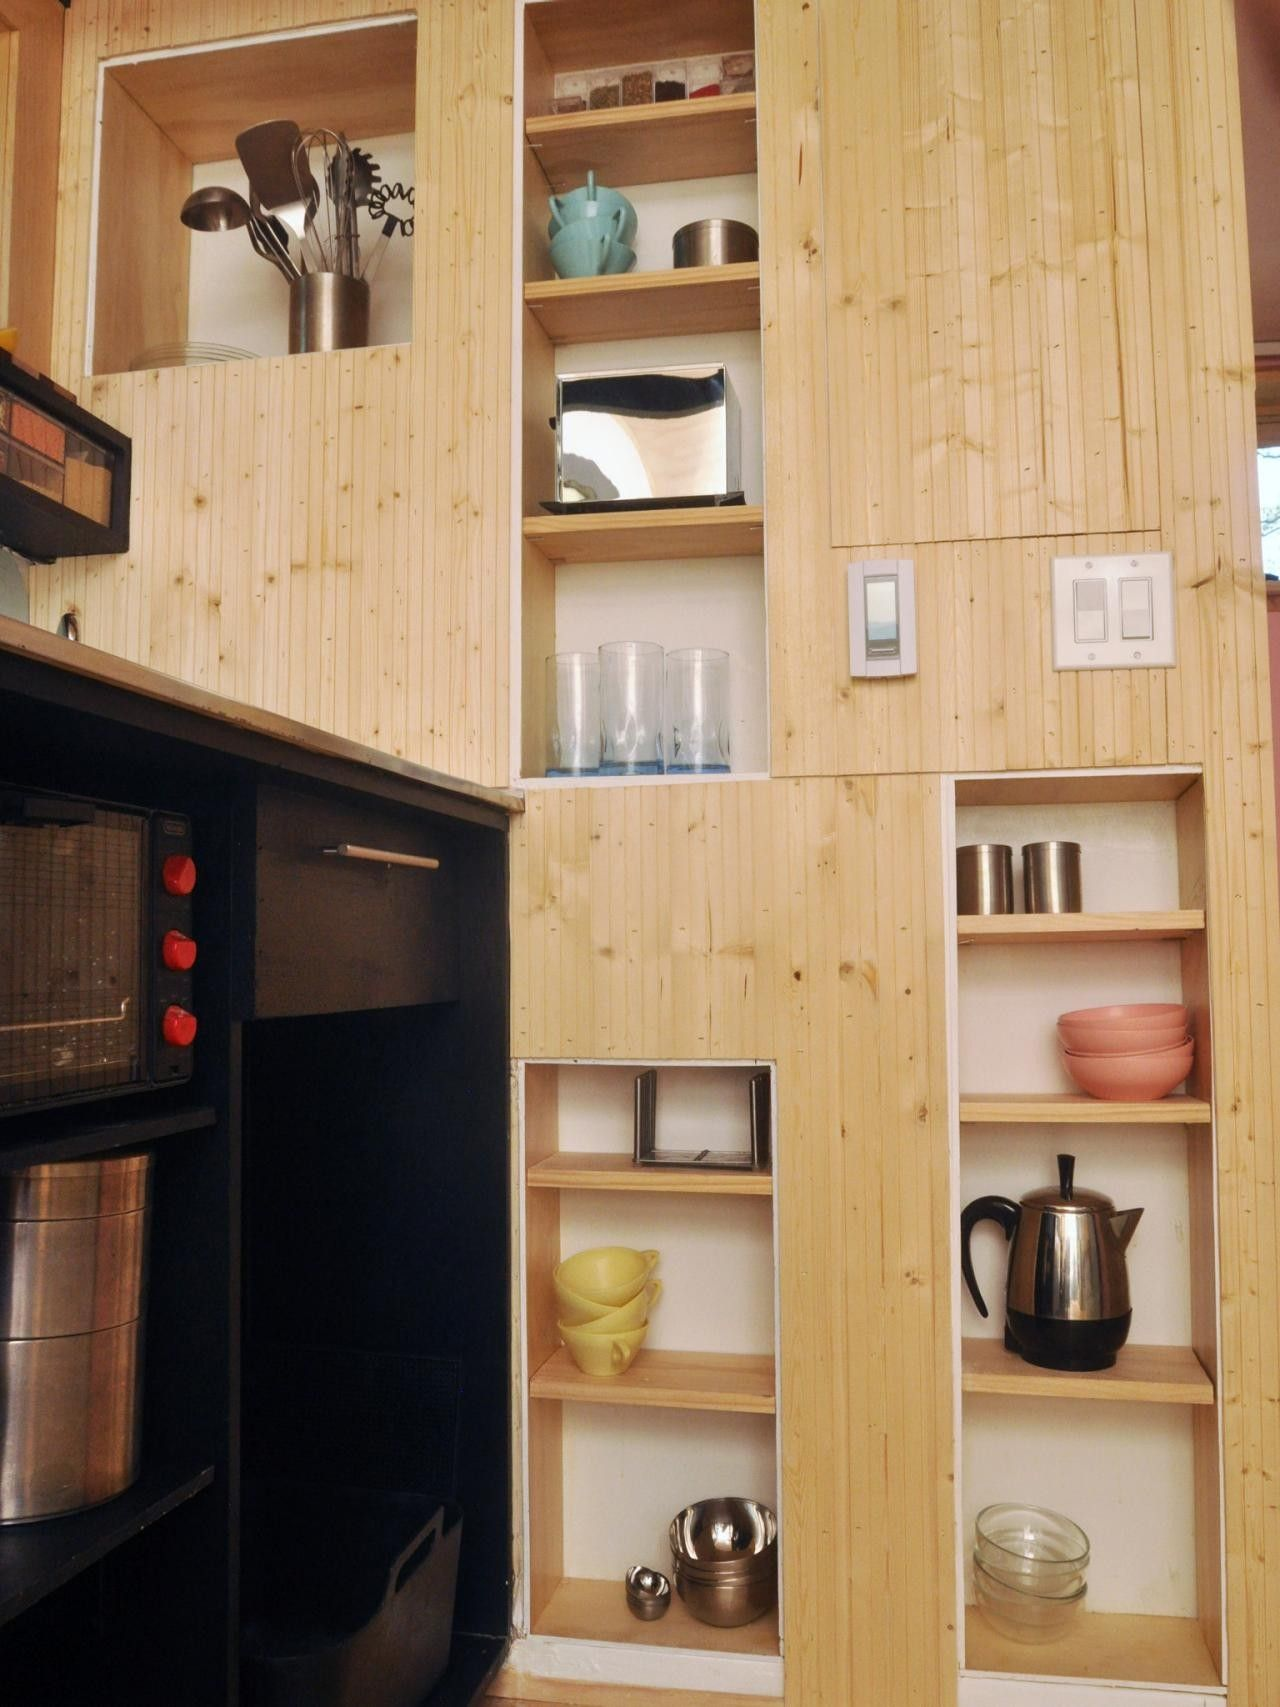 Charmant 70+ Clever Tiny House Storage Ideas